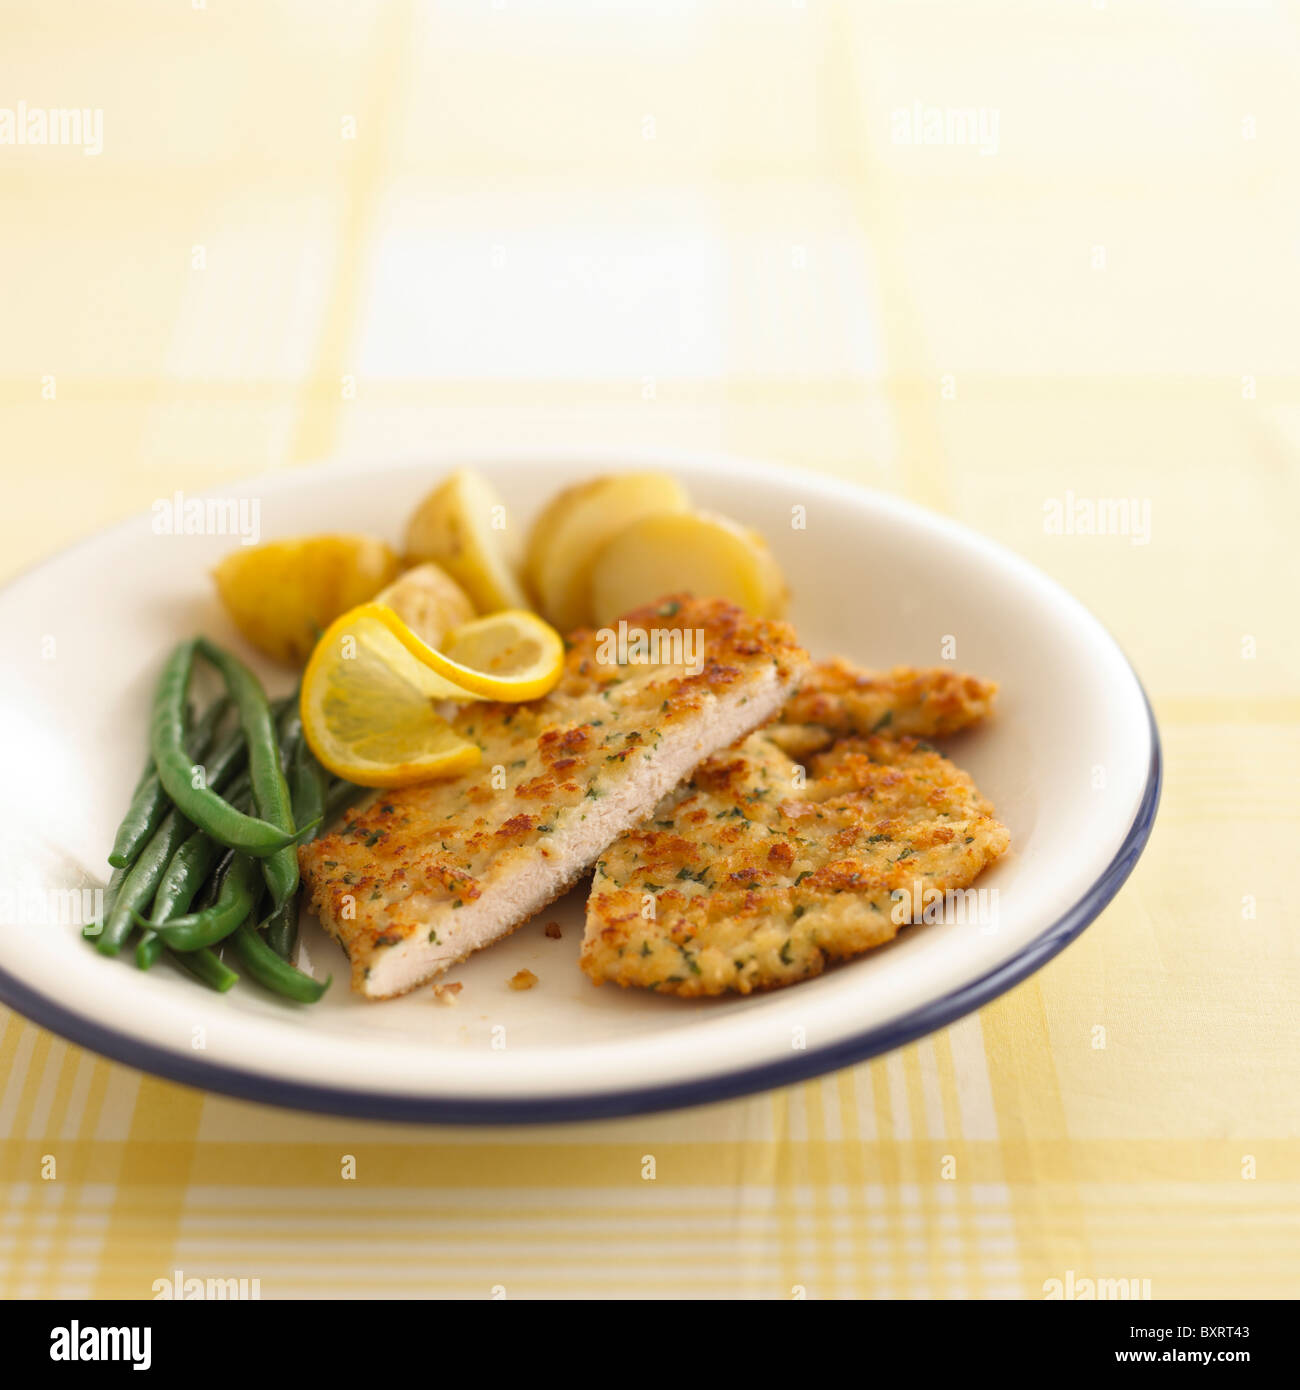 Chicken escalope, green beans and new potatoes on white plate - Stock Image